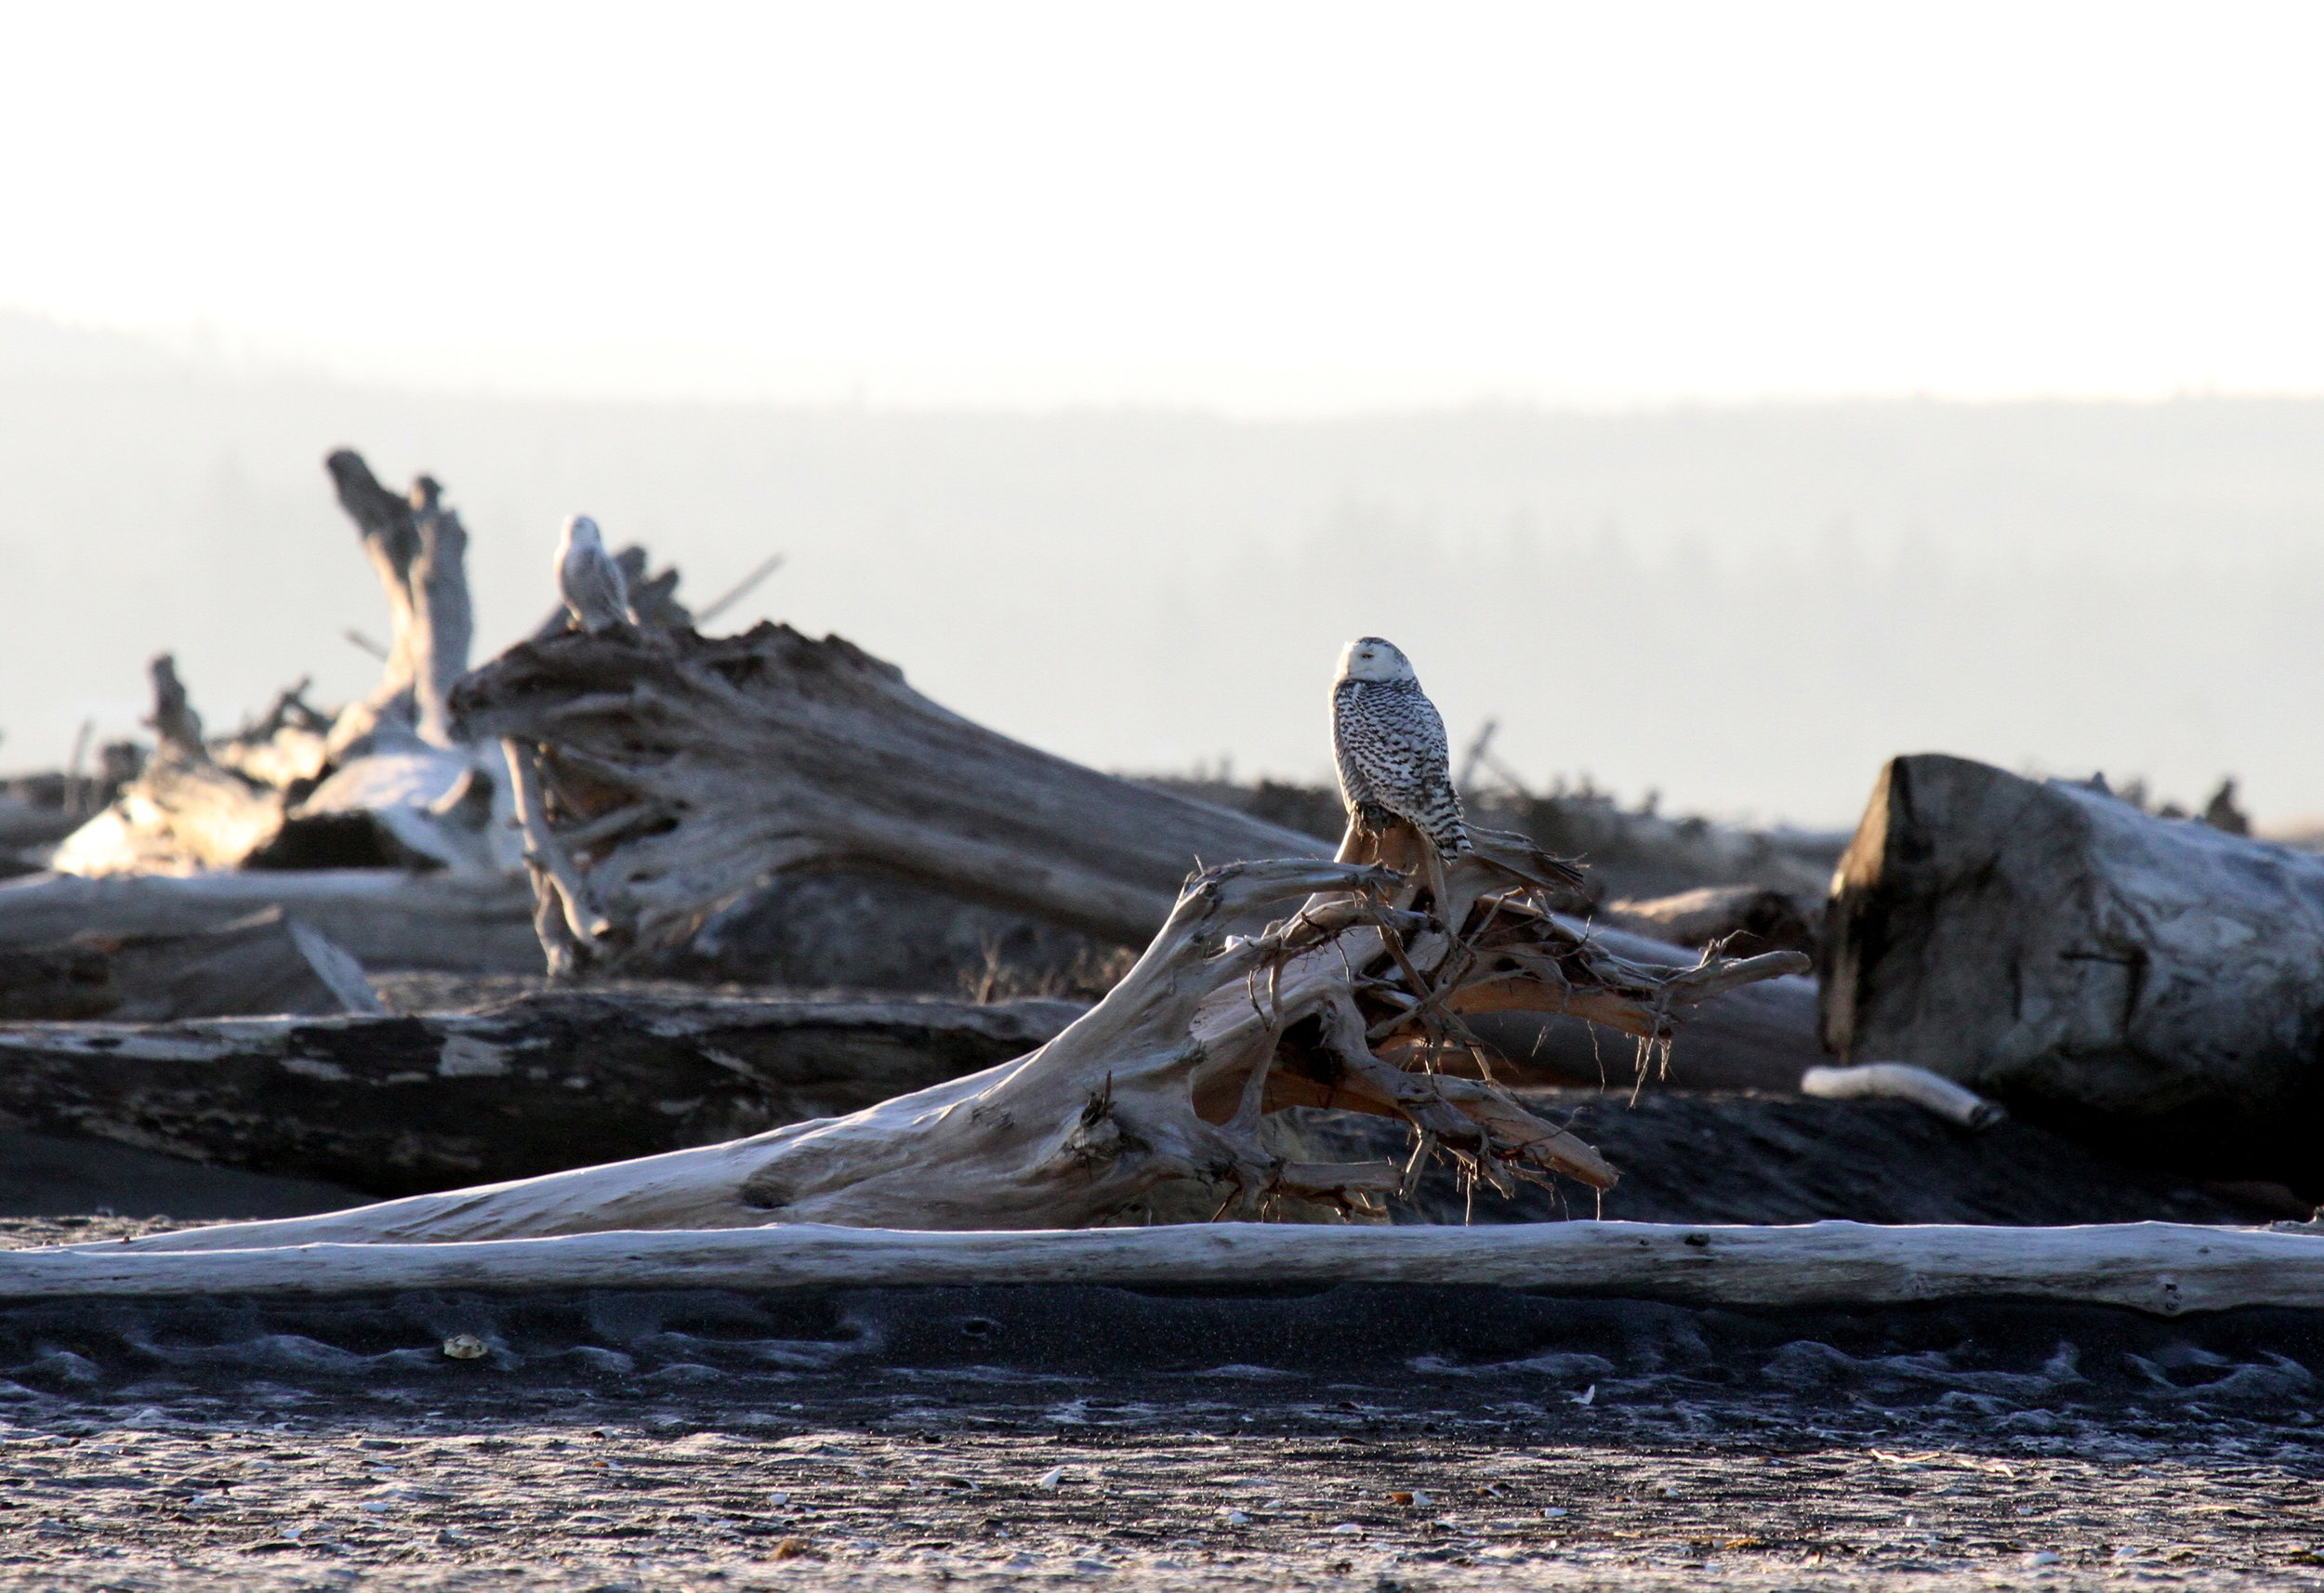 Two snow owls, last ones I saw as I made my way back along the shore. While I didn't have every owl in view at the same time, there seemed to be at least 10 snowy owls gathered that morning. Tanya Pluth photo.